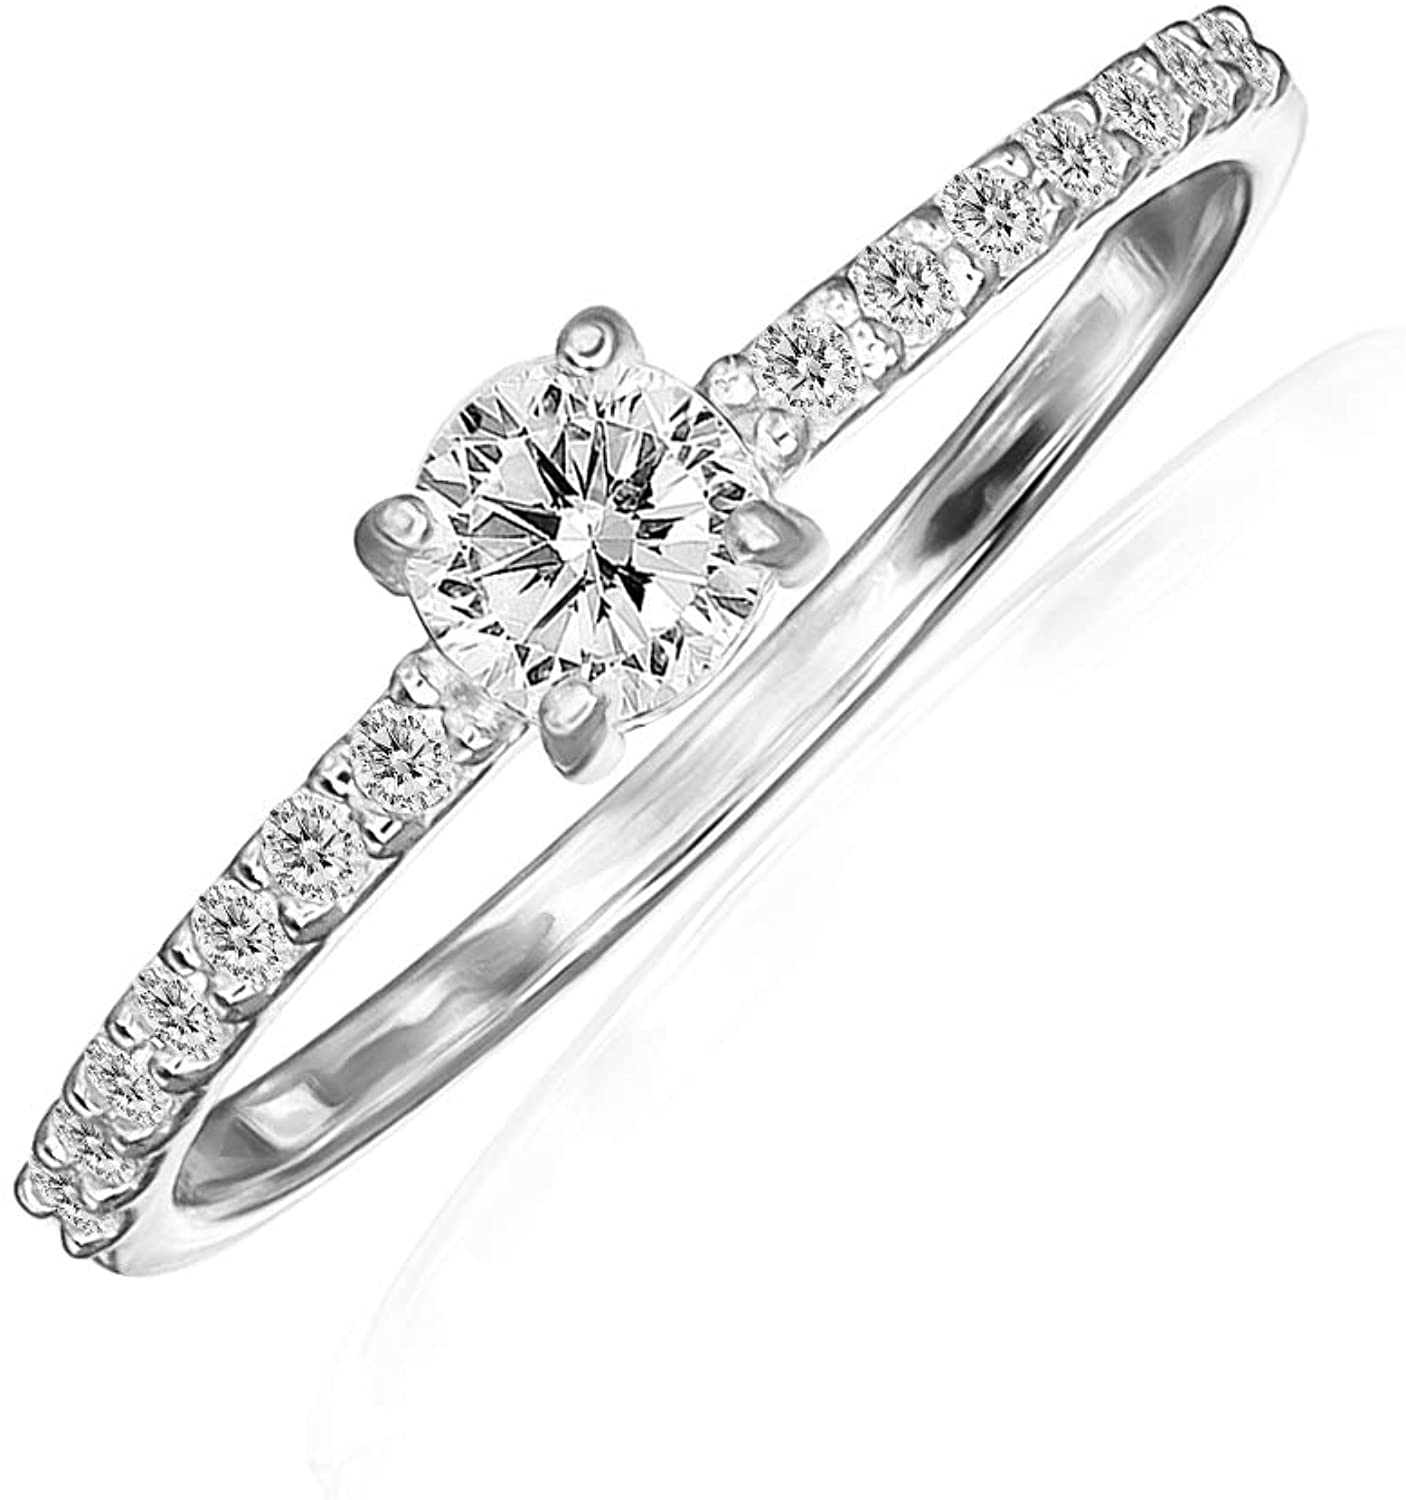 River Island Sterling Silver 4 mm Round-Cut Solitaire Cubic Zirconia Engagement Ring, Sizes 5-8 | Available in Silver, Rose and Yellow Gold